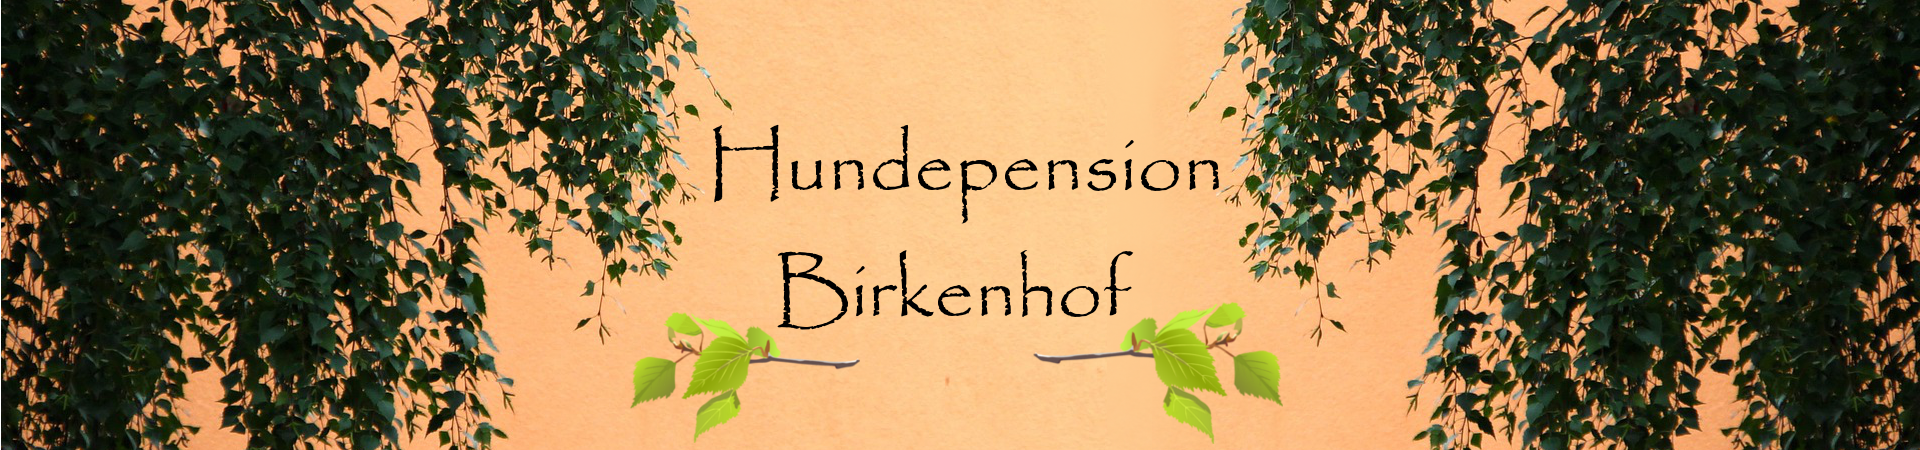 Hundepension Birkenhof